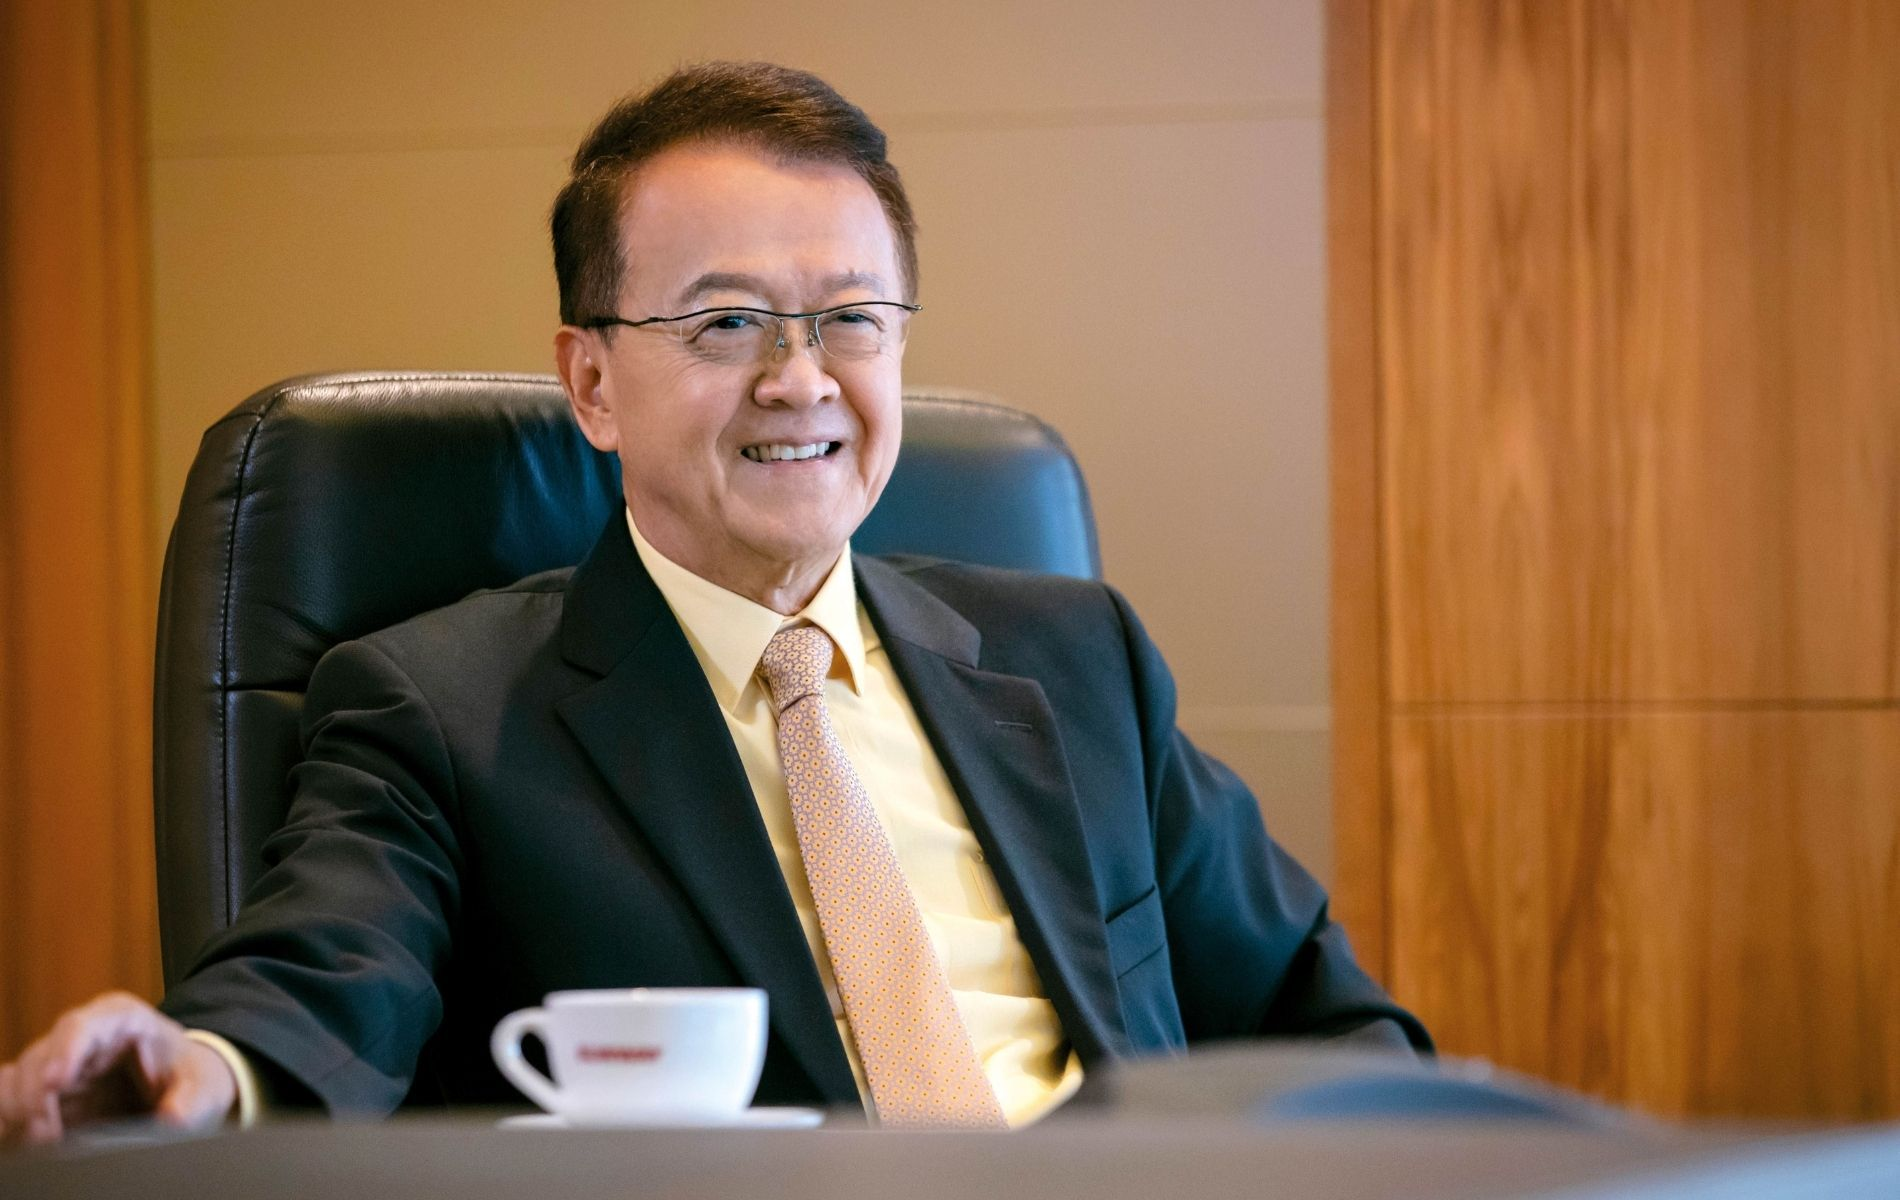 Asia's Most Influential 2020: Tan Sri Dr Jeffrey Cheah